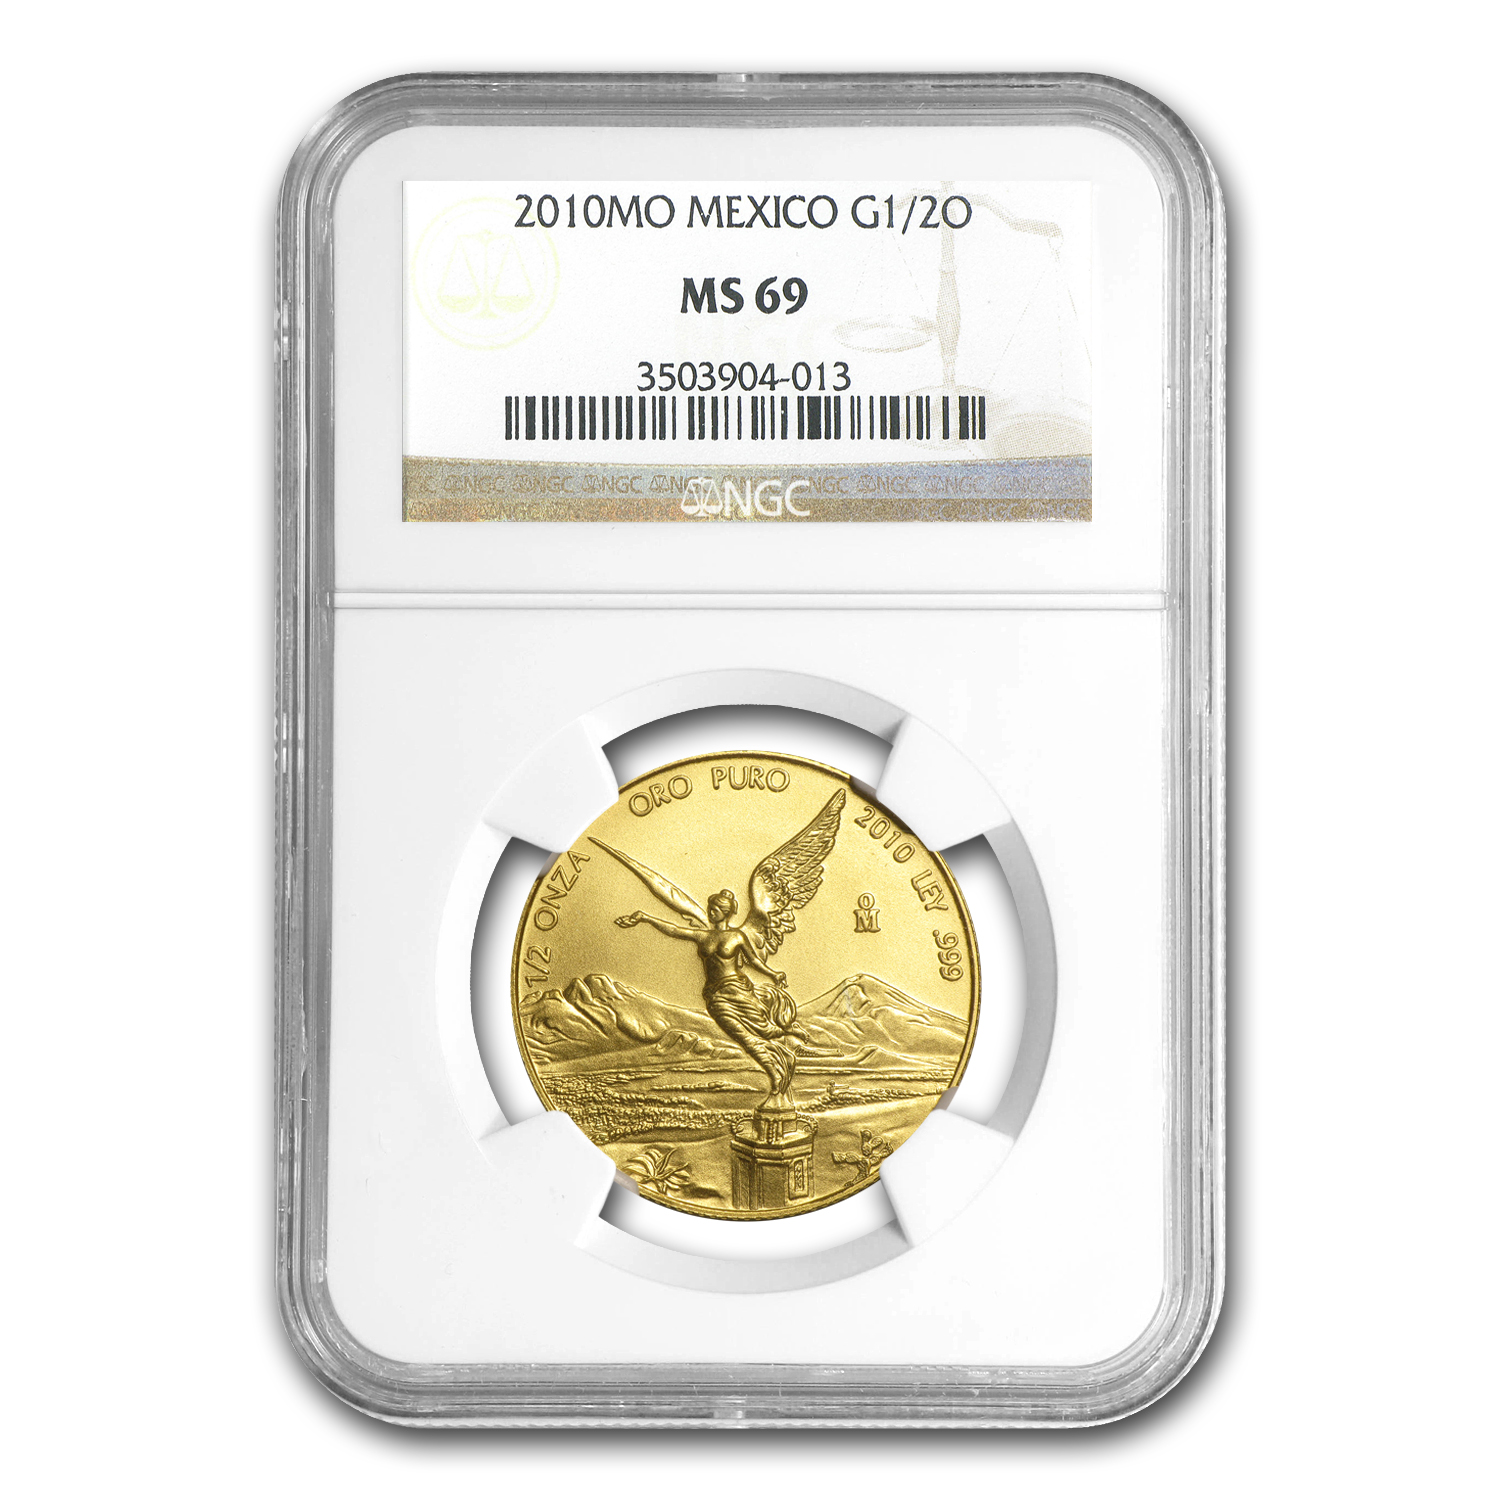 2010 Mexico 1/2 oz Gold Libertad MS-69 NGC